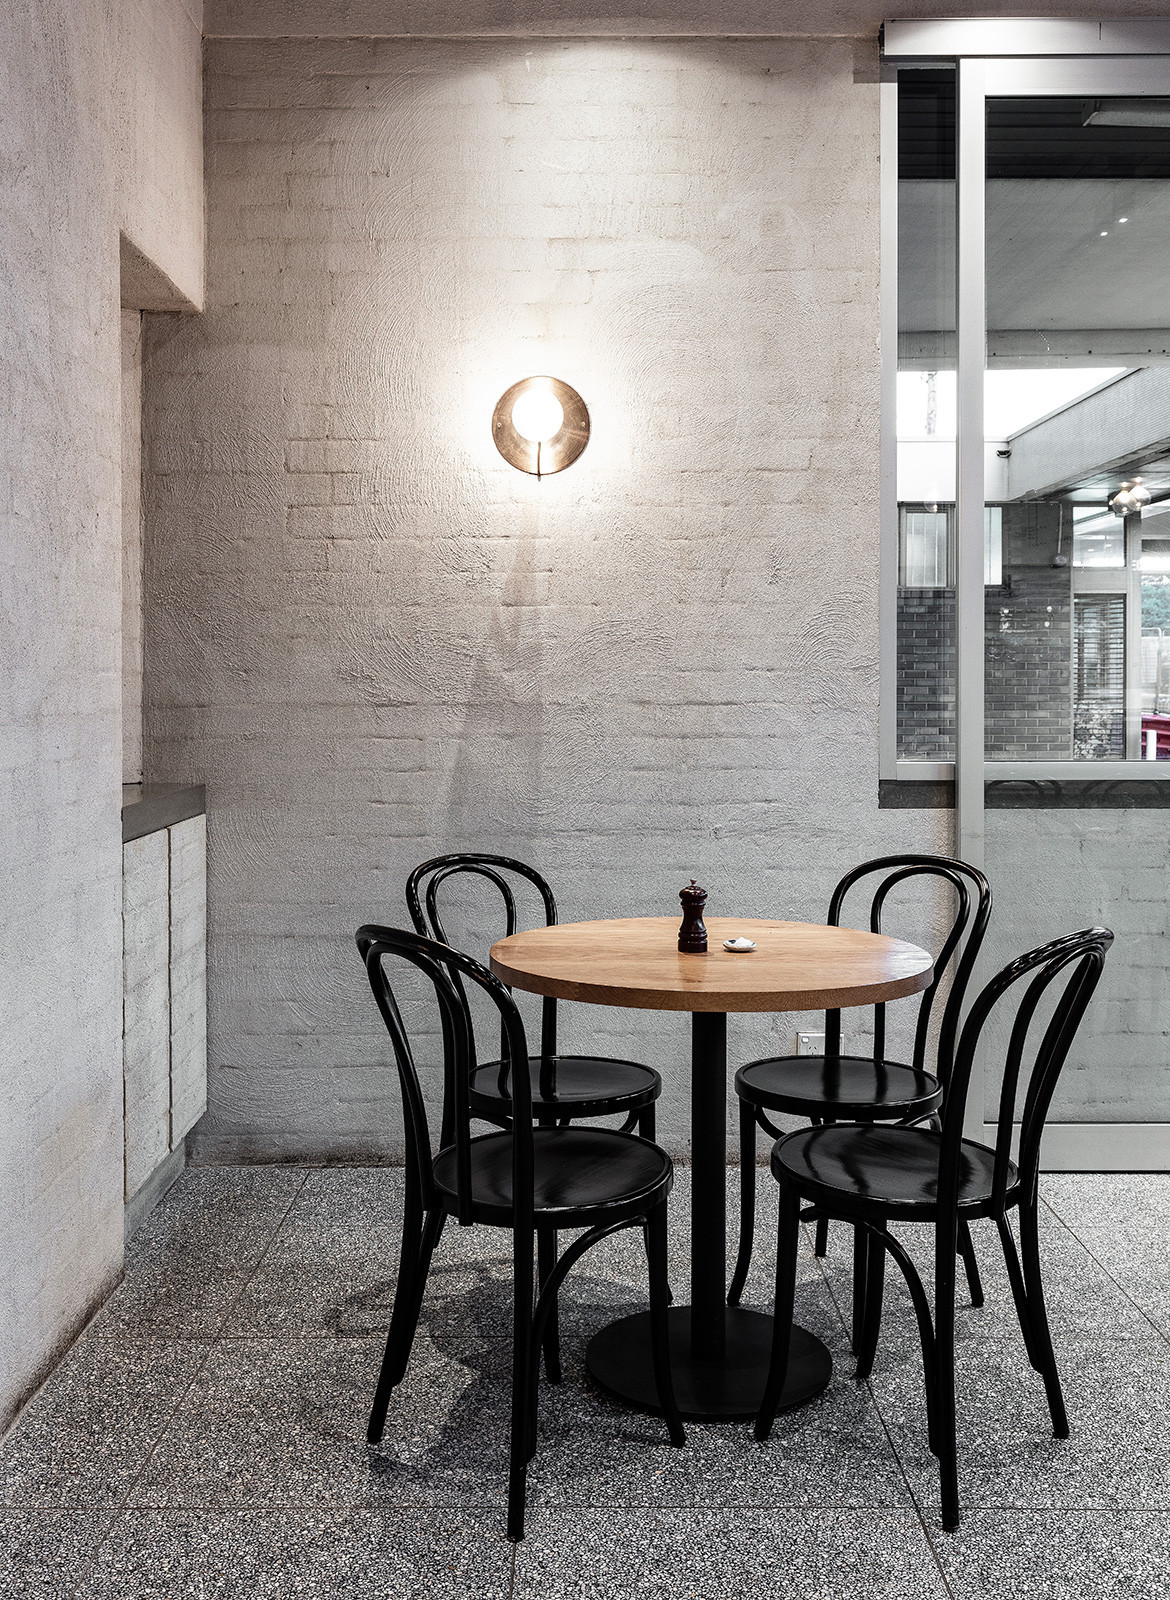 Ricco Bloch High St Cafe Randwick round table lighting detail